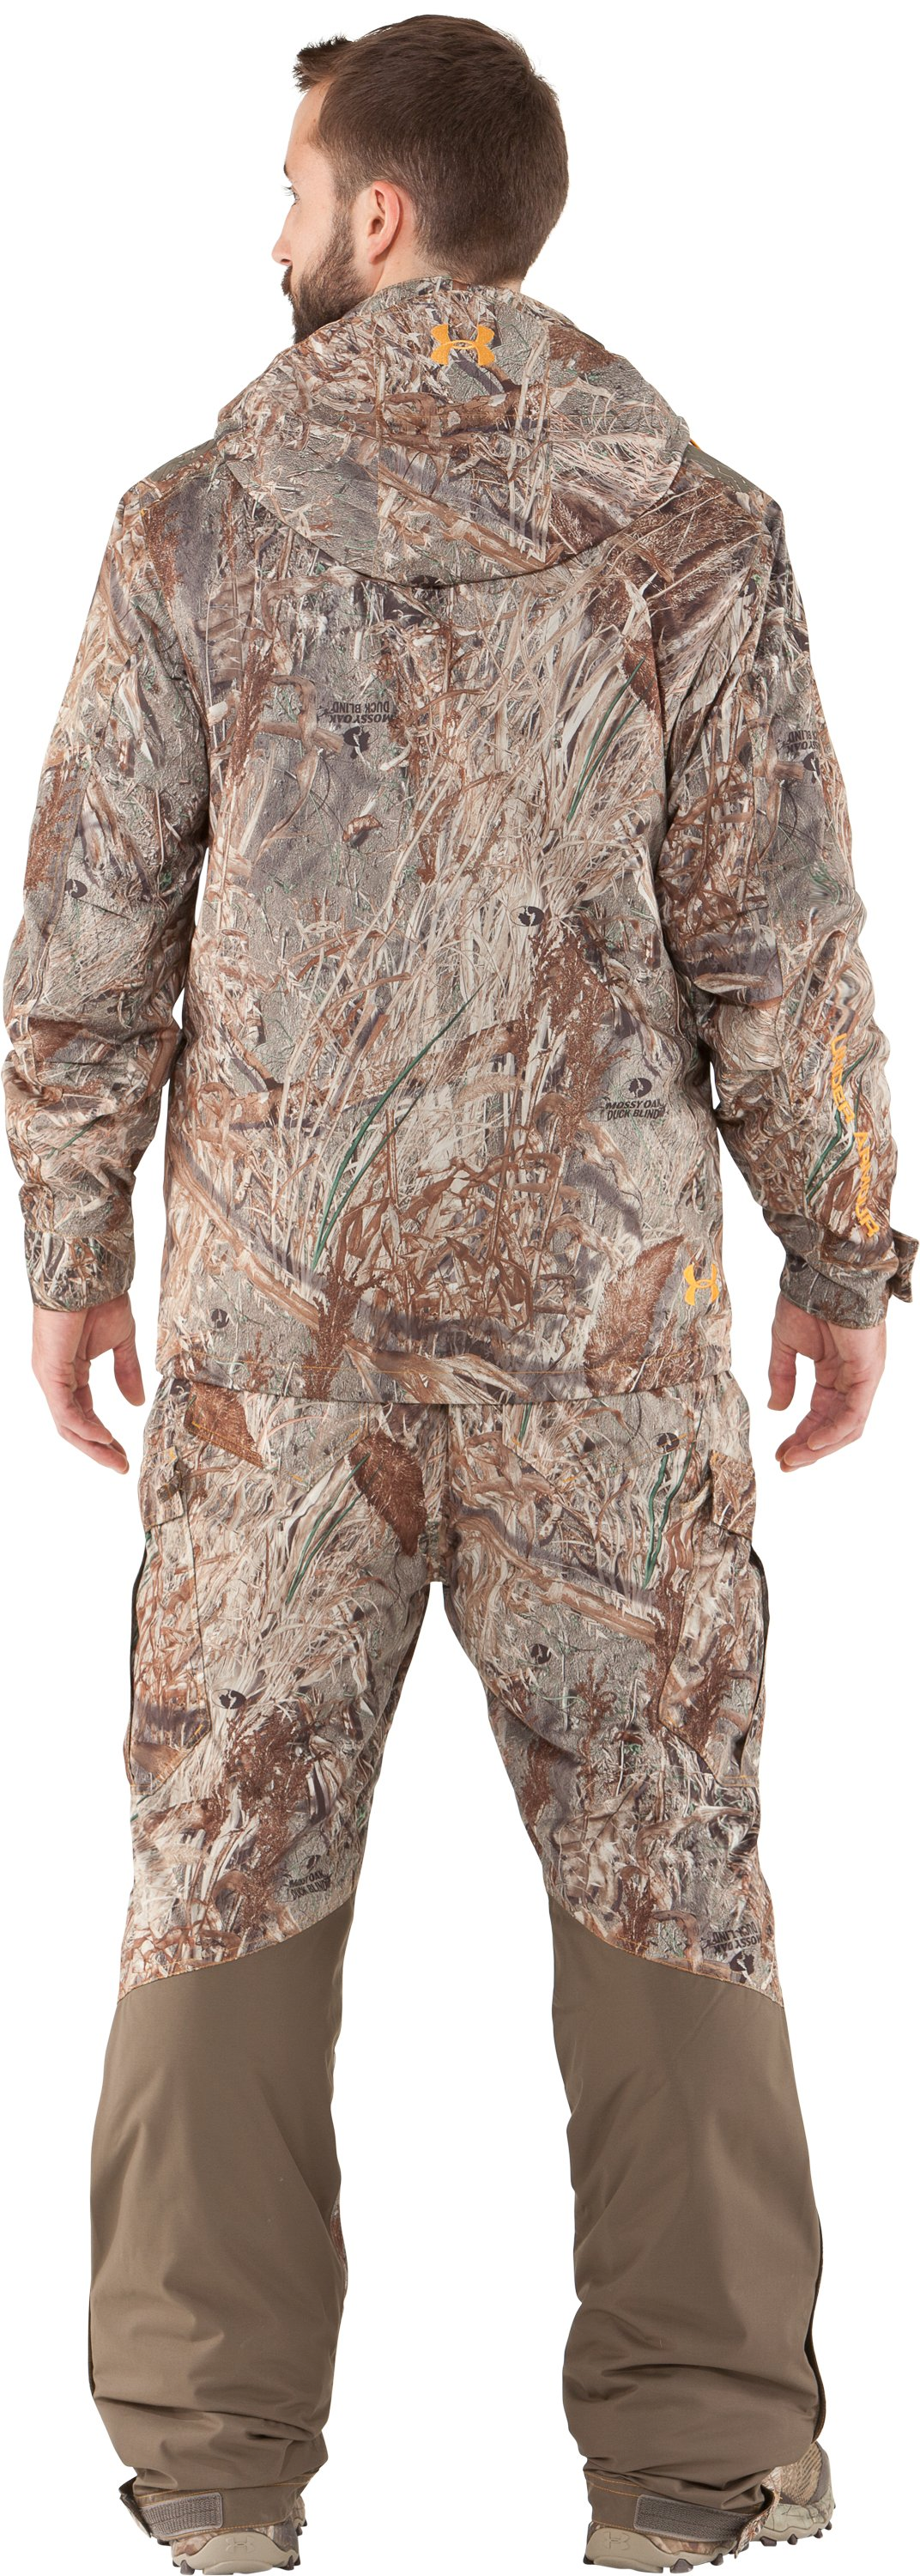 Men's UA Skysweeper Systems 3-in-1 Jacket, Duck Blind, Back